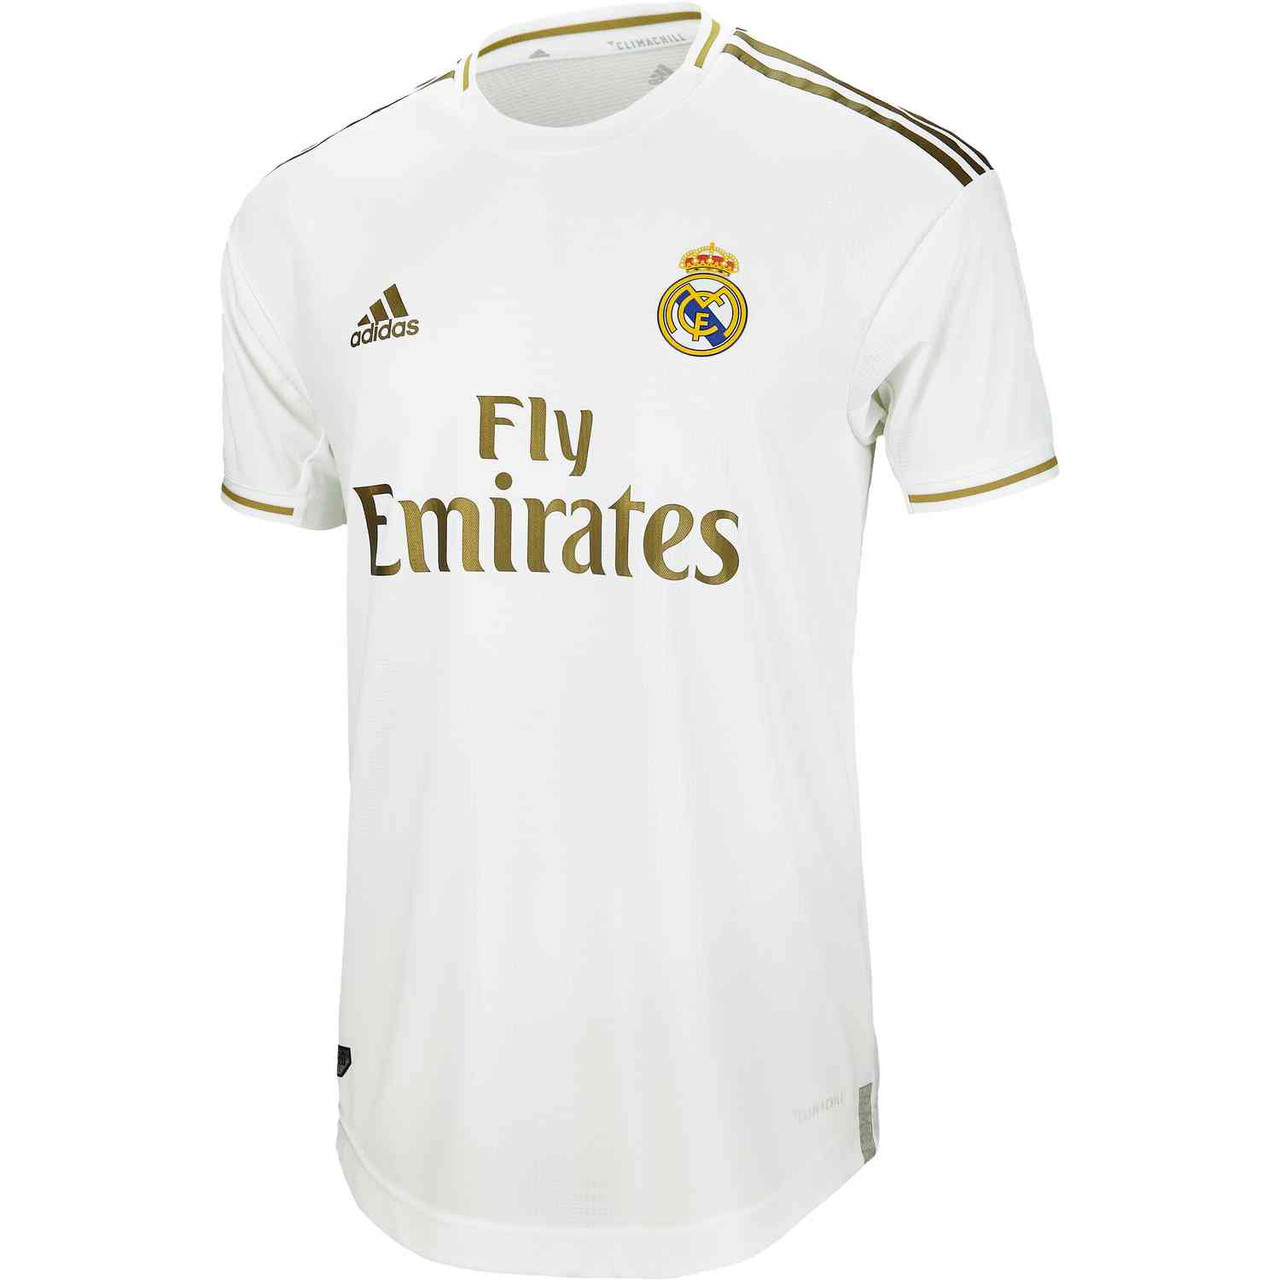 ADIDAS REAL MADRID 2020 AUTHENTIC HOME JERSEY WHITE